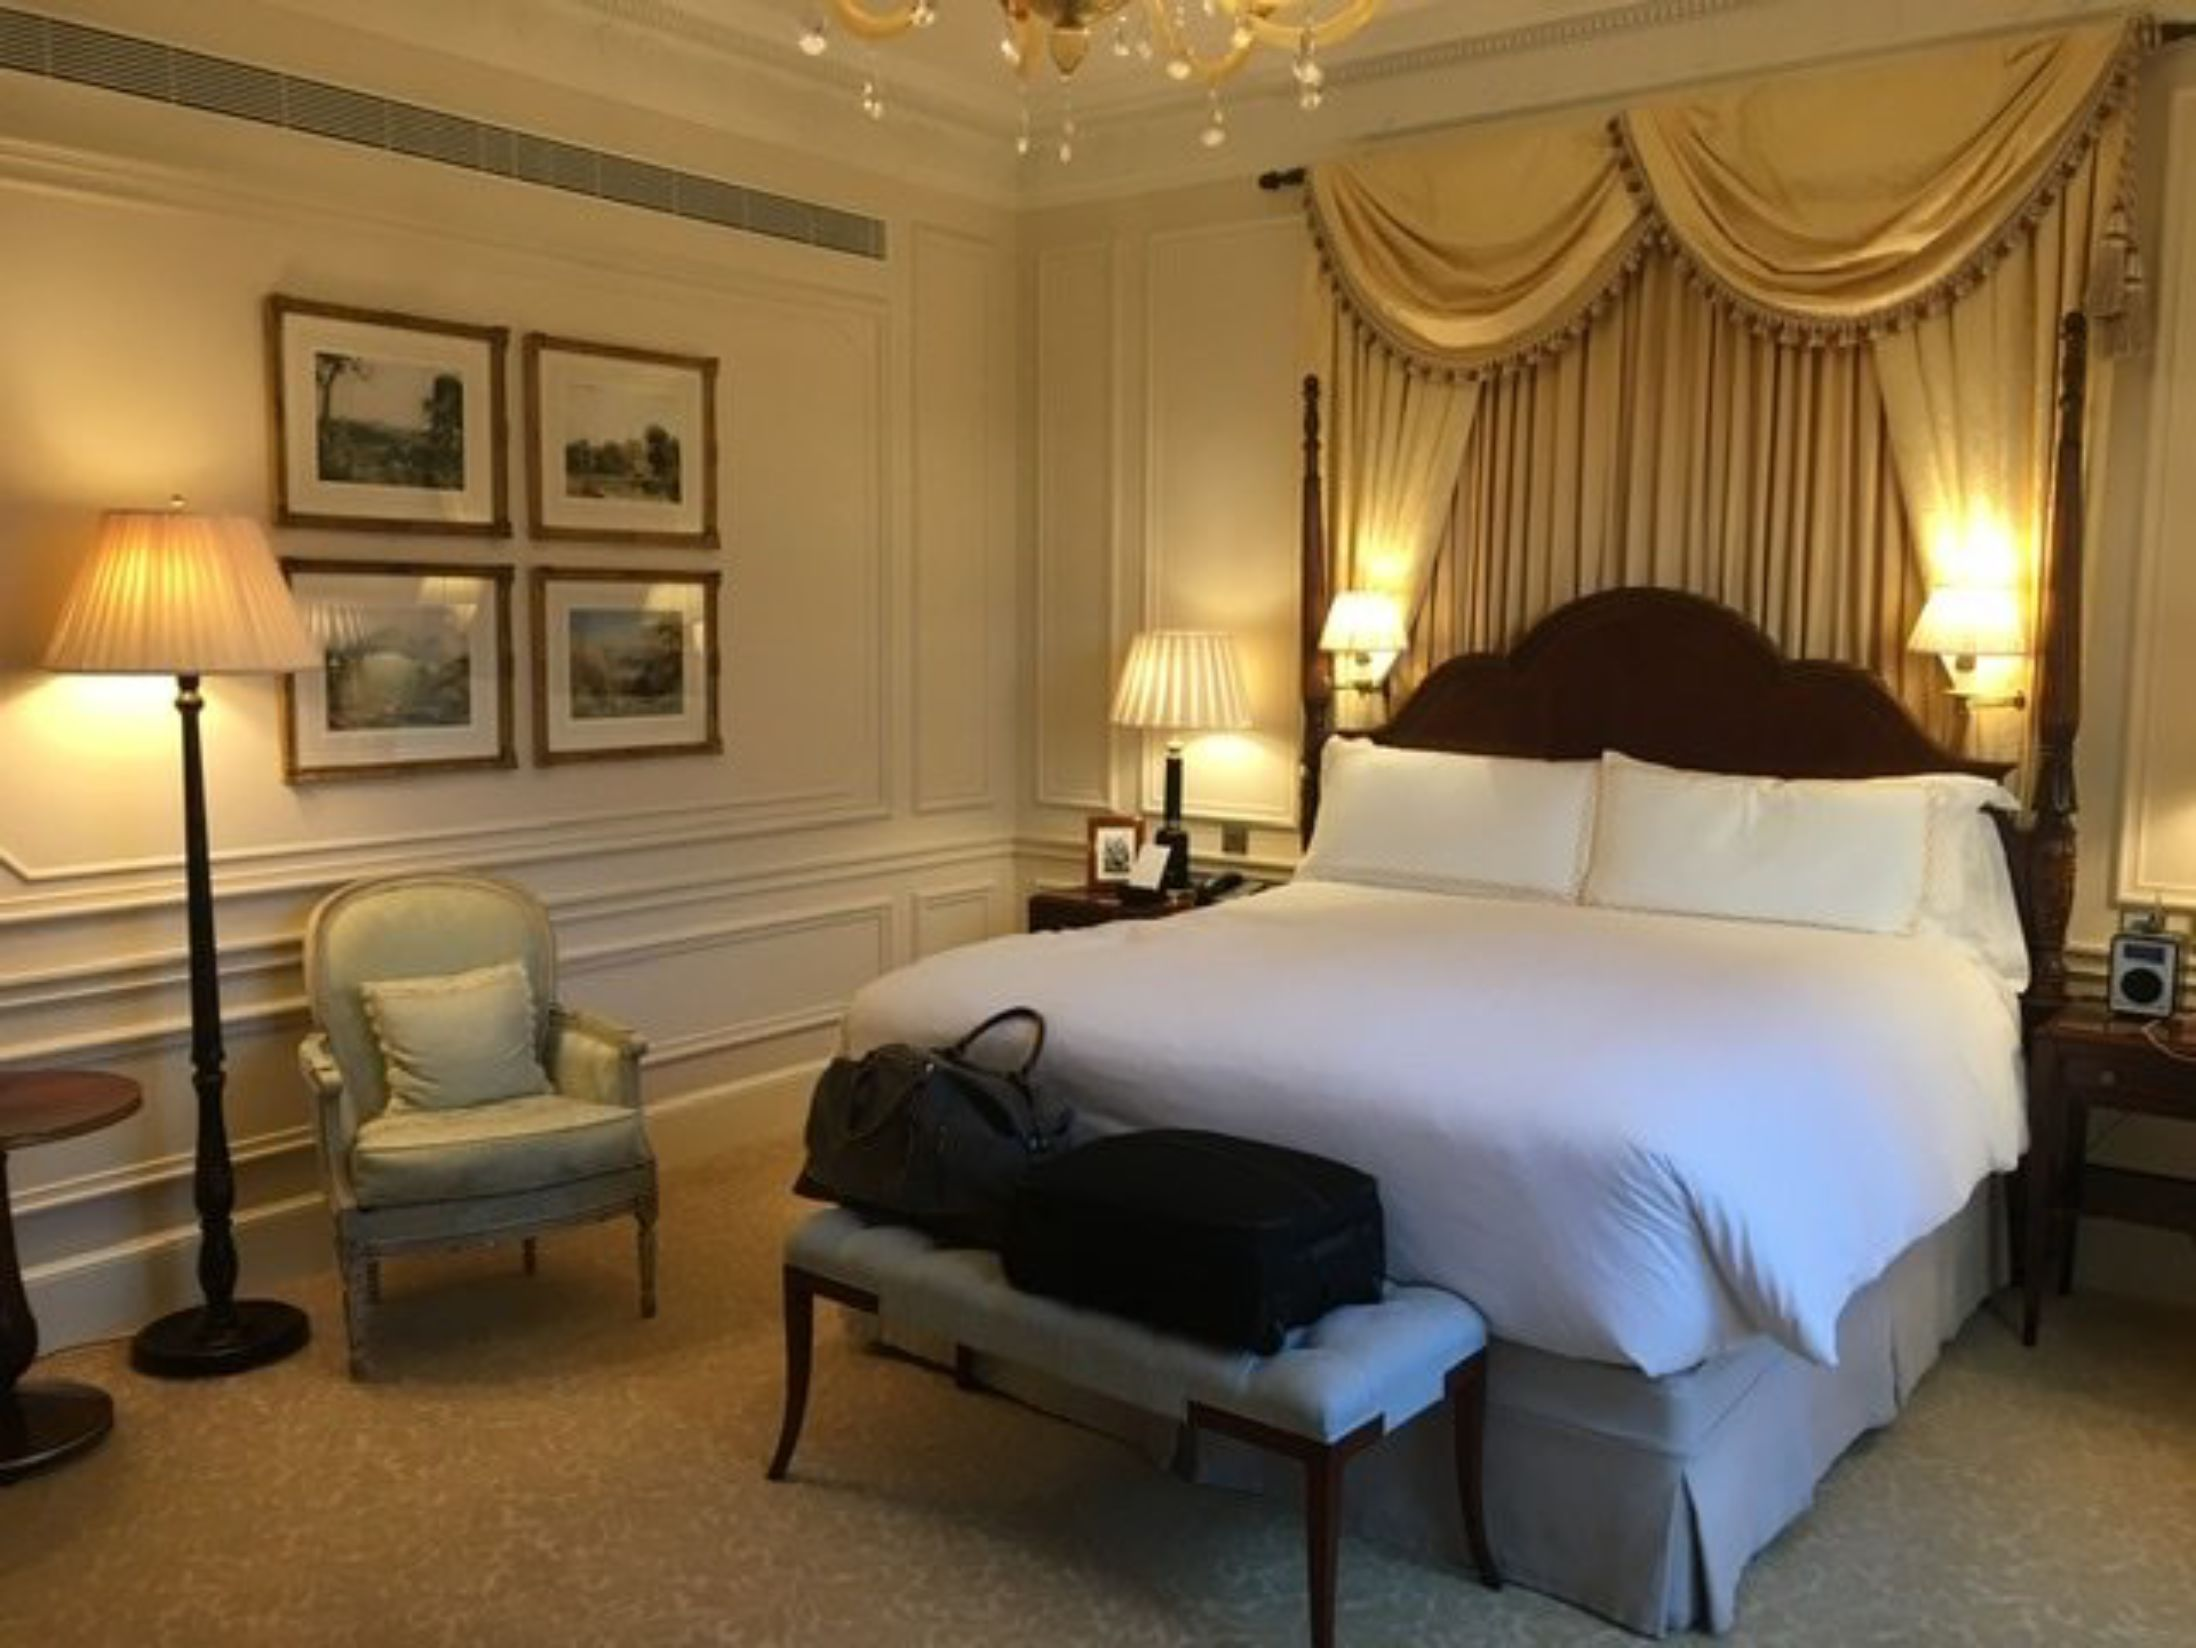 Best Hotels in Central London - The Savoy